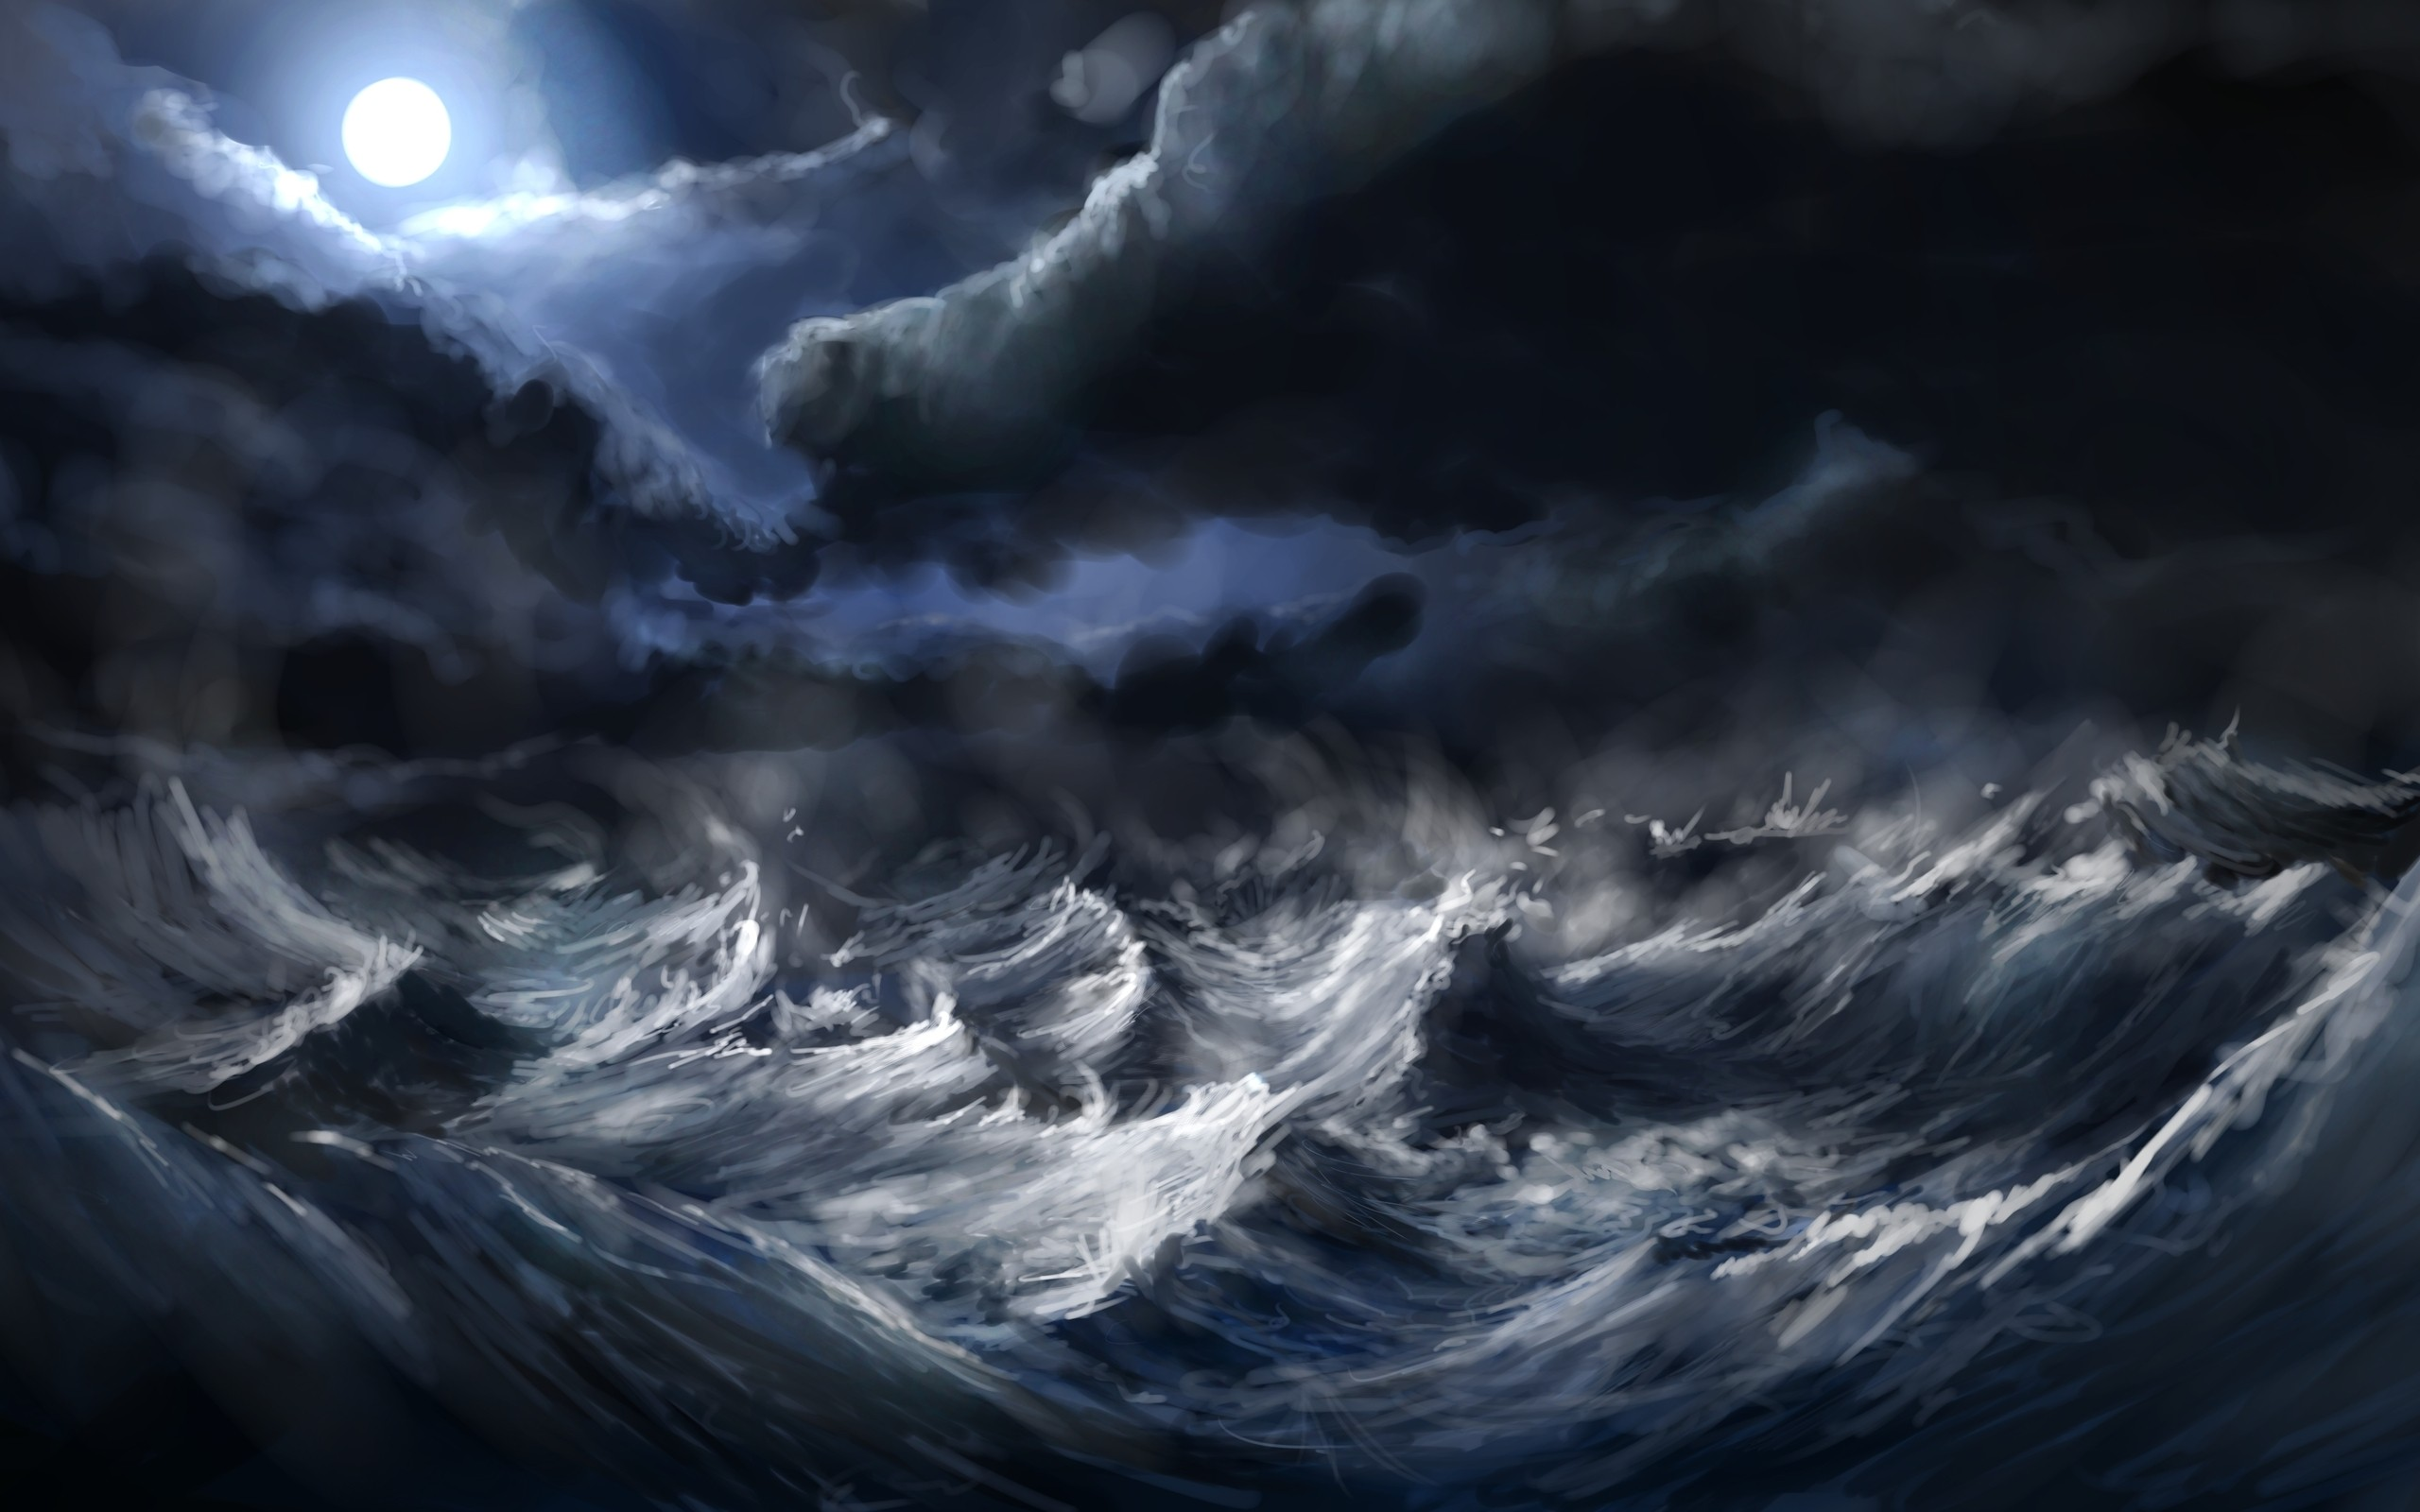 Waves Storm Wallpaper 2560x1600 Waves Storm Moon Artwork Alexlinde 2560x1600